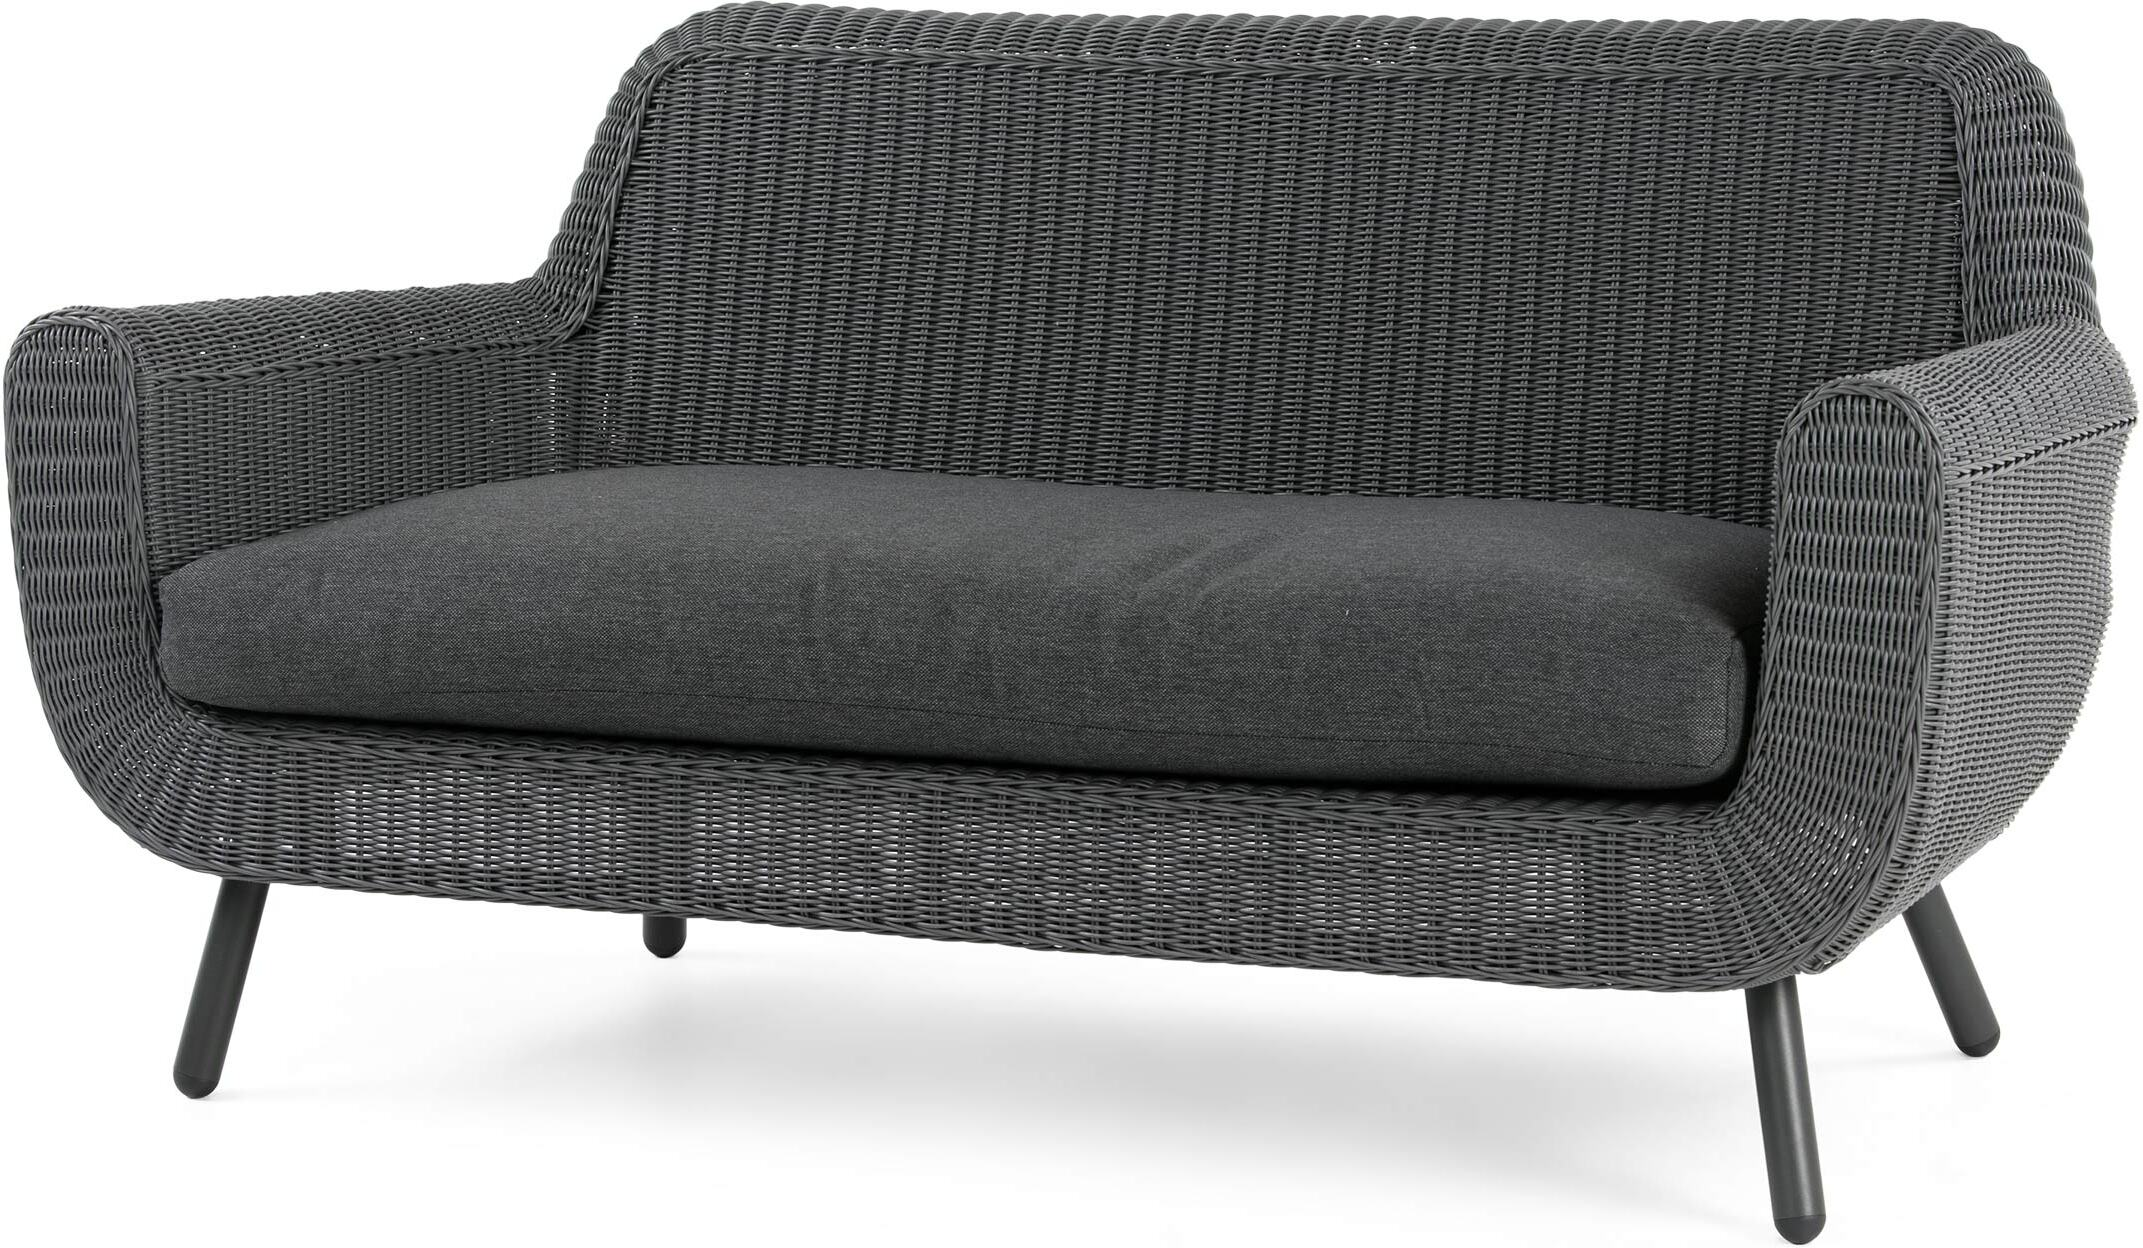 2 Seater Rattan Sofa Uk Outdoor Rattan Sofa Shop For Cheap Sheds And Garden